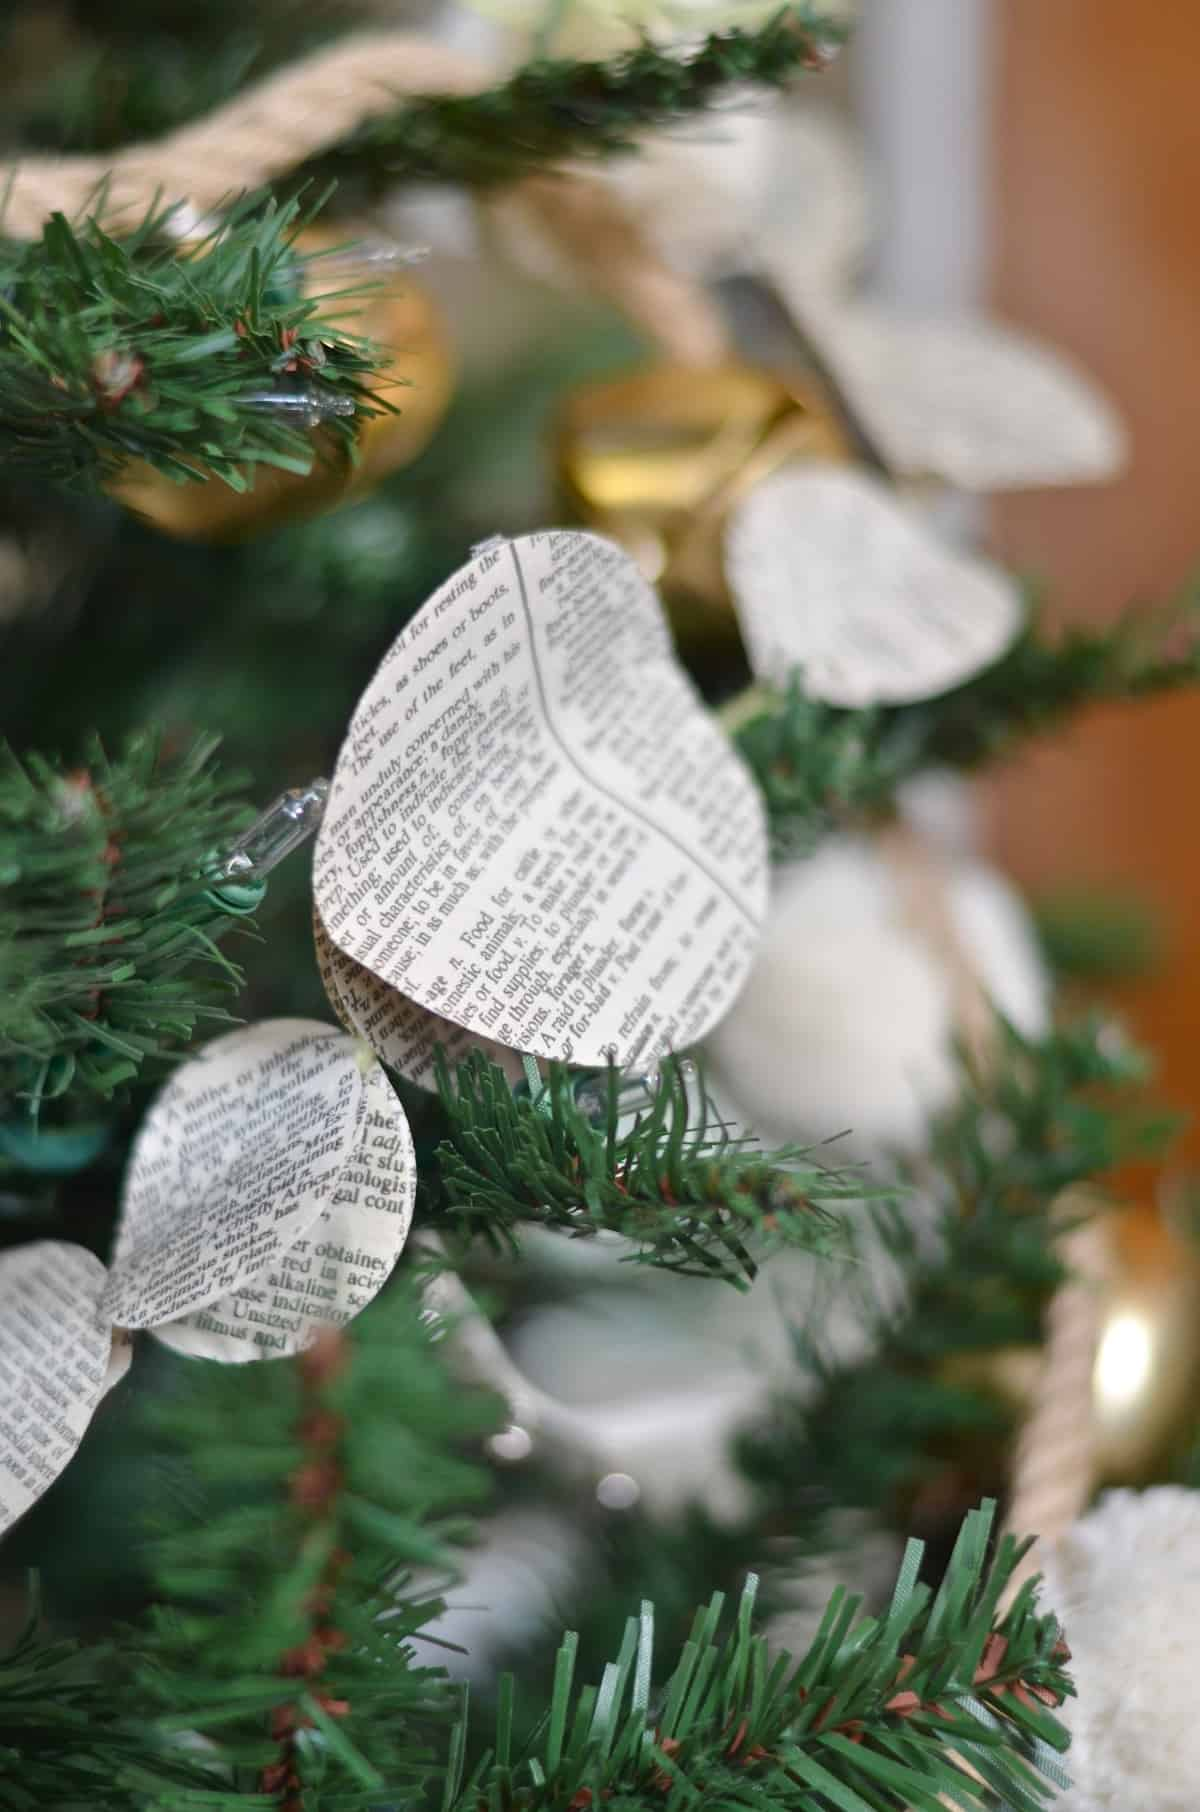 Decorating a tree with DIY mini garlands galore.